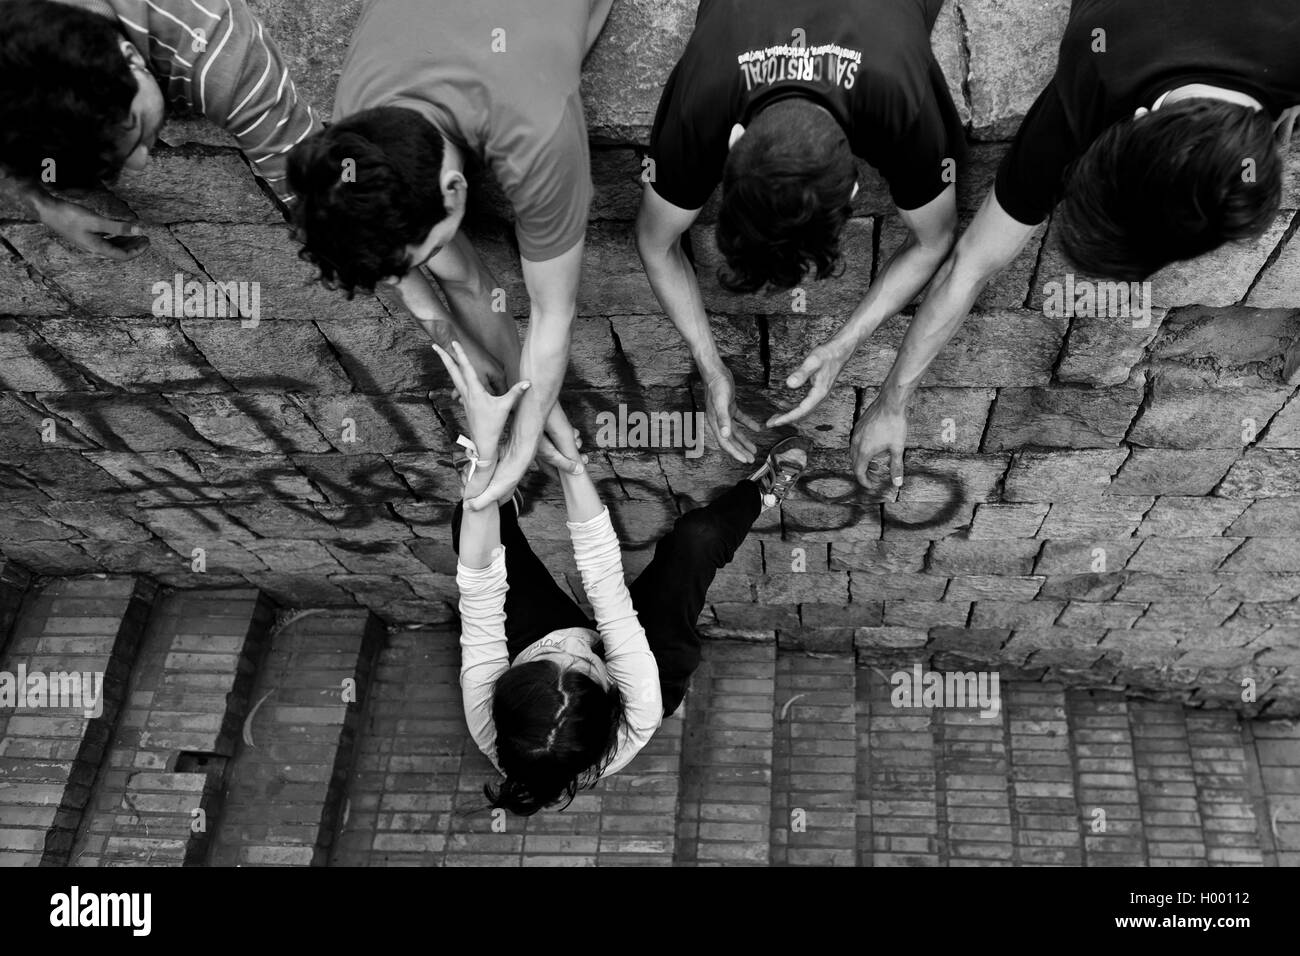 A Colombian female freerunner, hung on his mates' hands, climbs on the wall during parkour trainings in Bogotá, - Stock Image